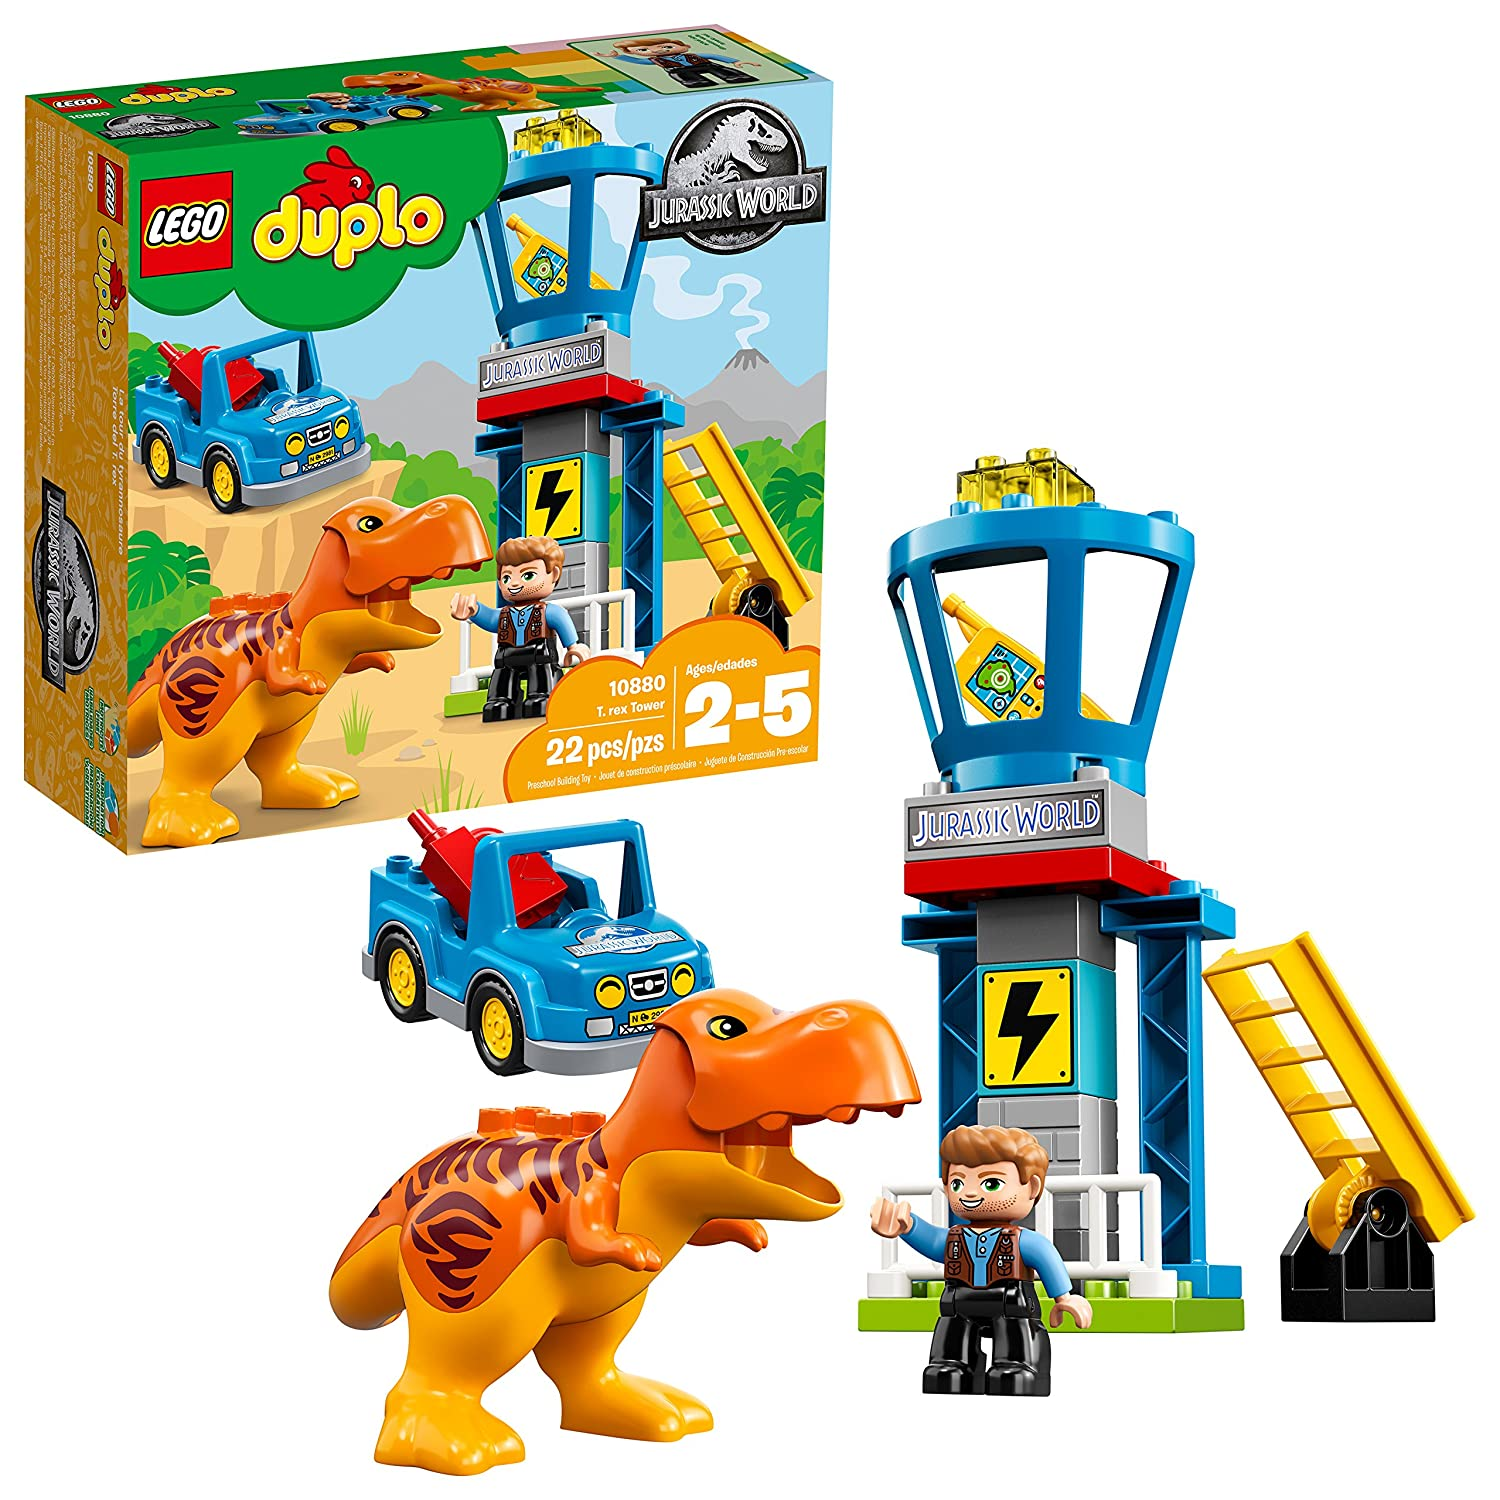 Top 9 Best Lego Duplo Sets Reviews in 2019 8